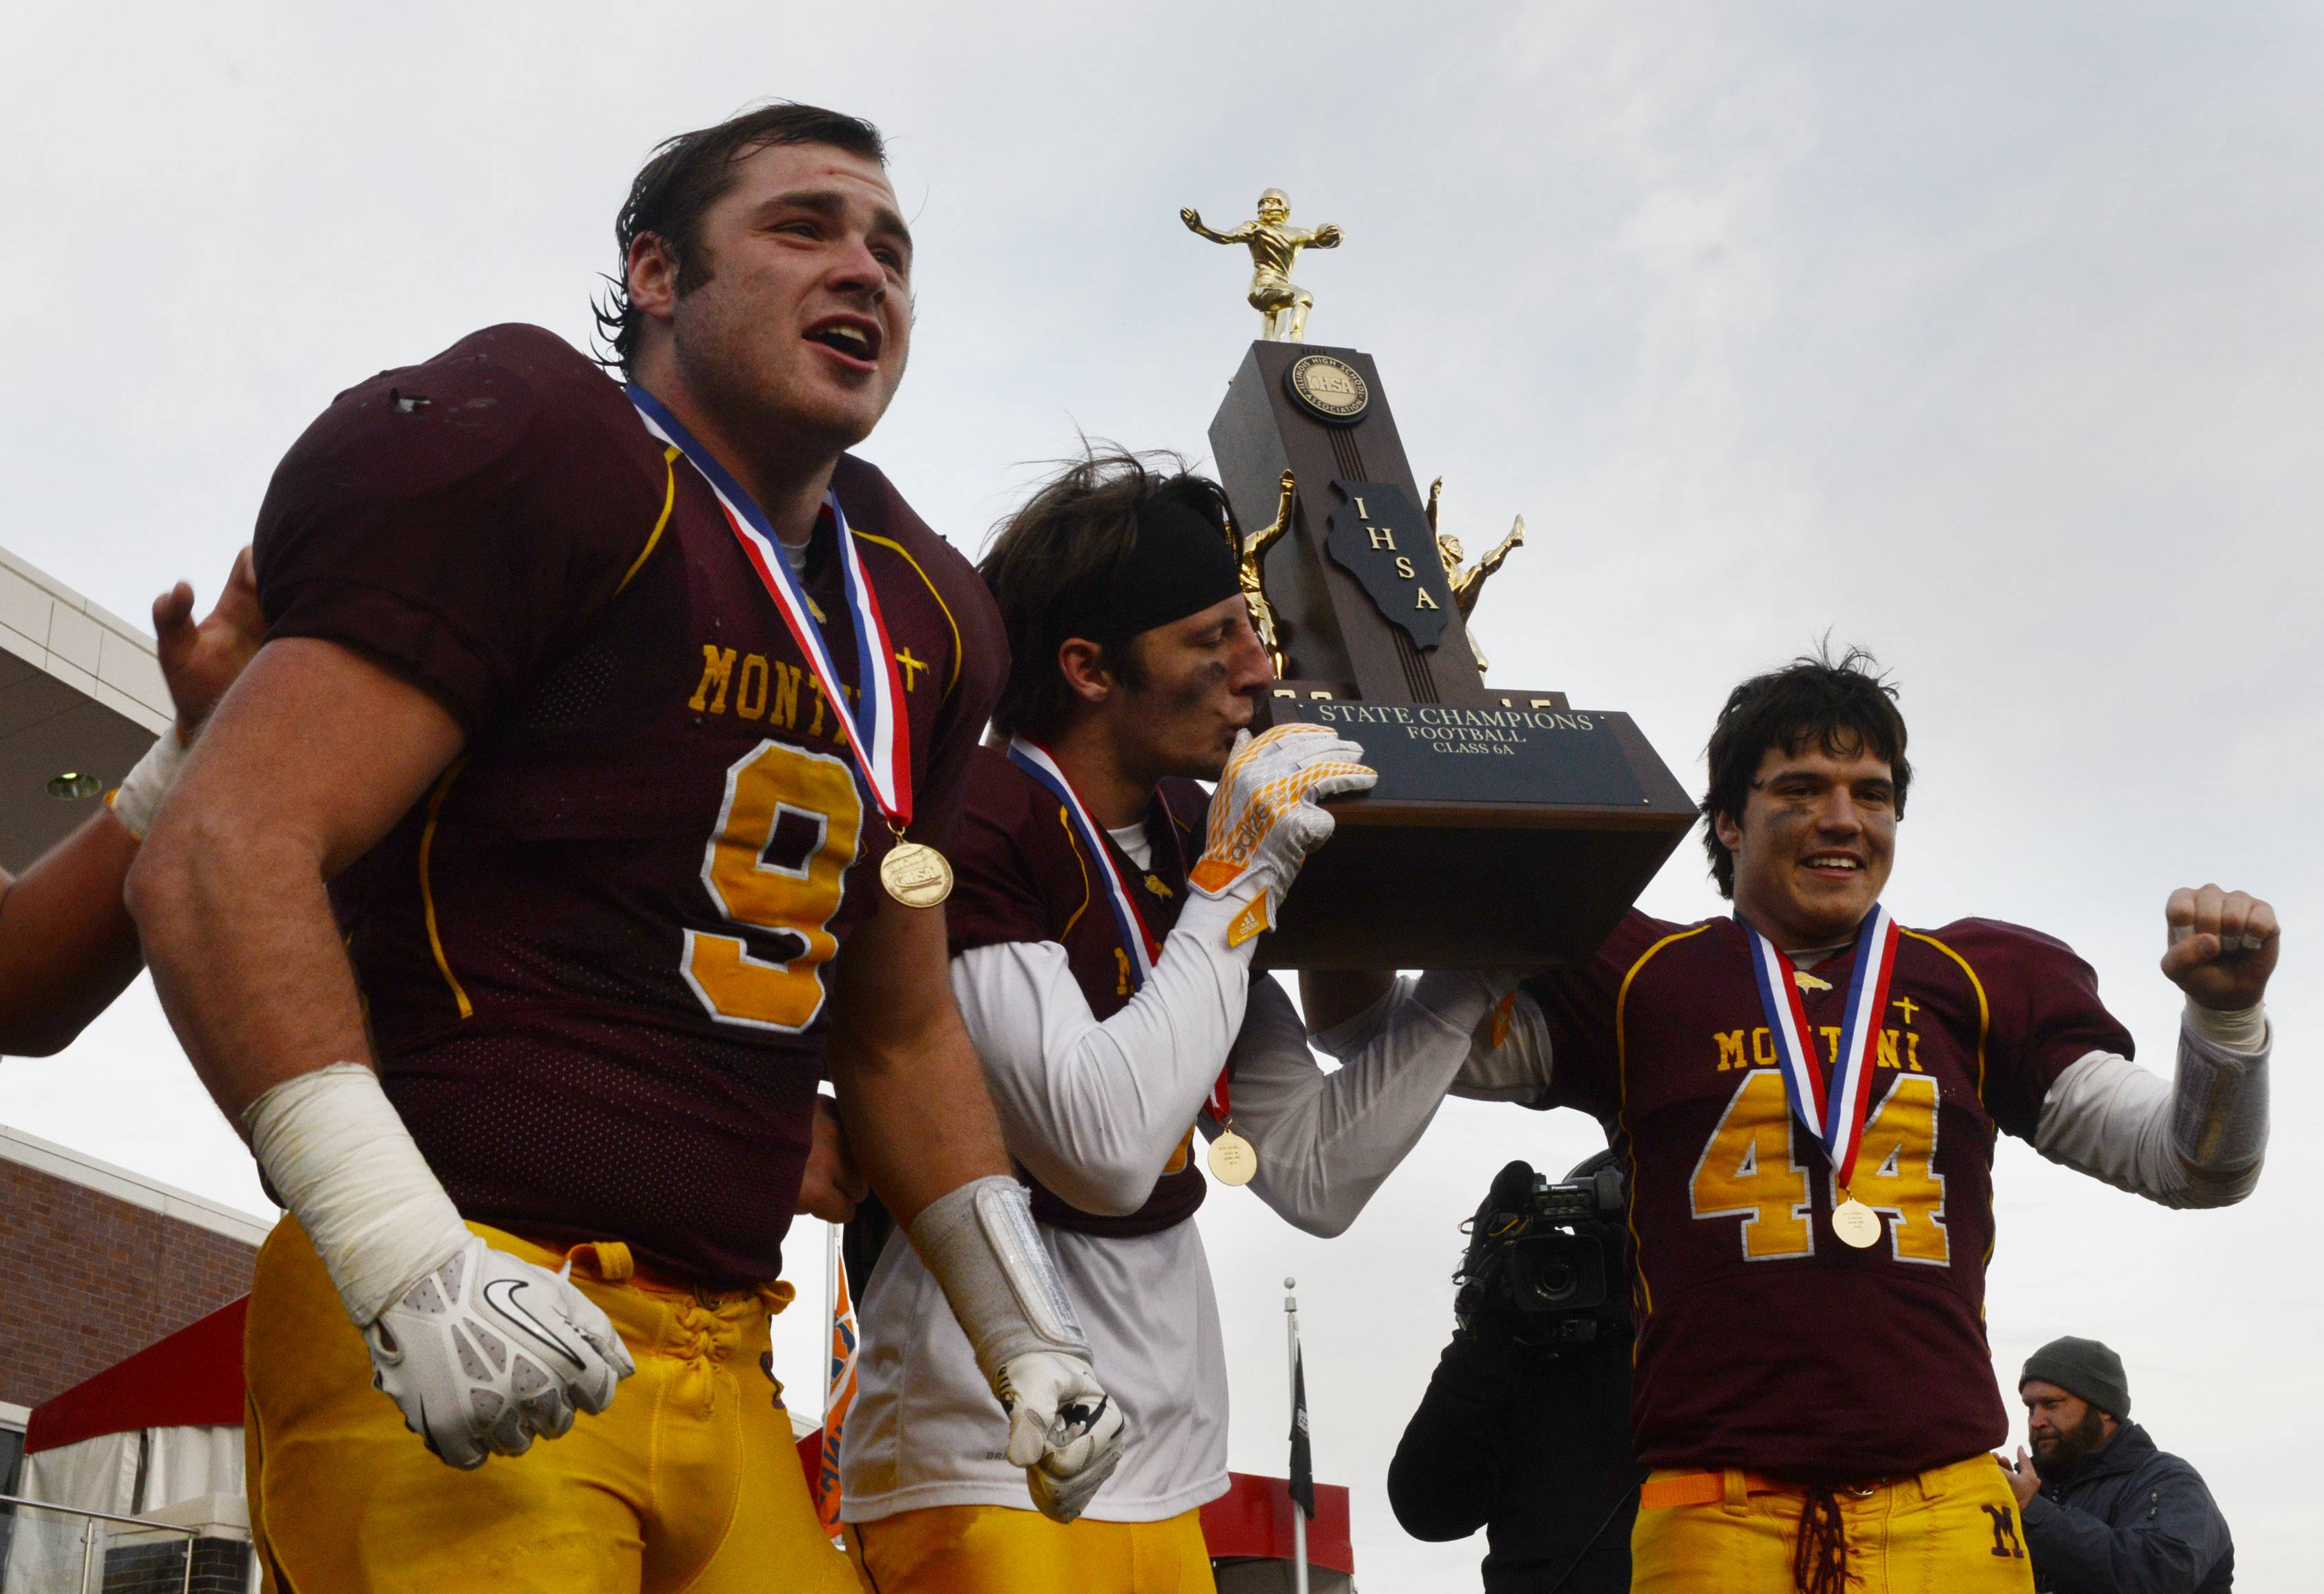 Left to right, Montini's John Embrey,Tyler Millikan and Luke Sheppard celebrate with their team's trophy after the Class 6A football championship game at Northern Illinois University in DeKalb Saturday.